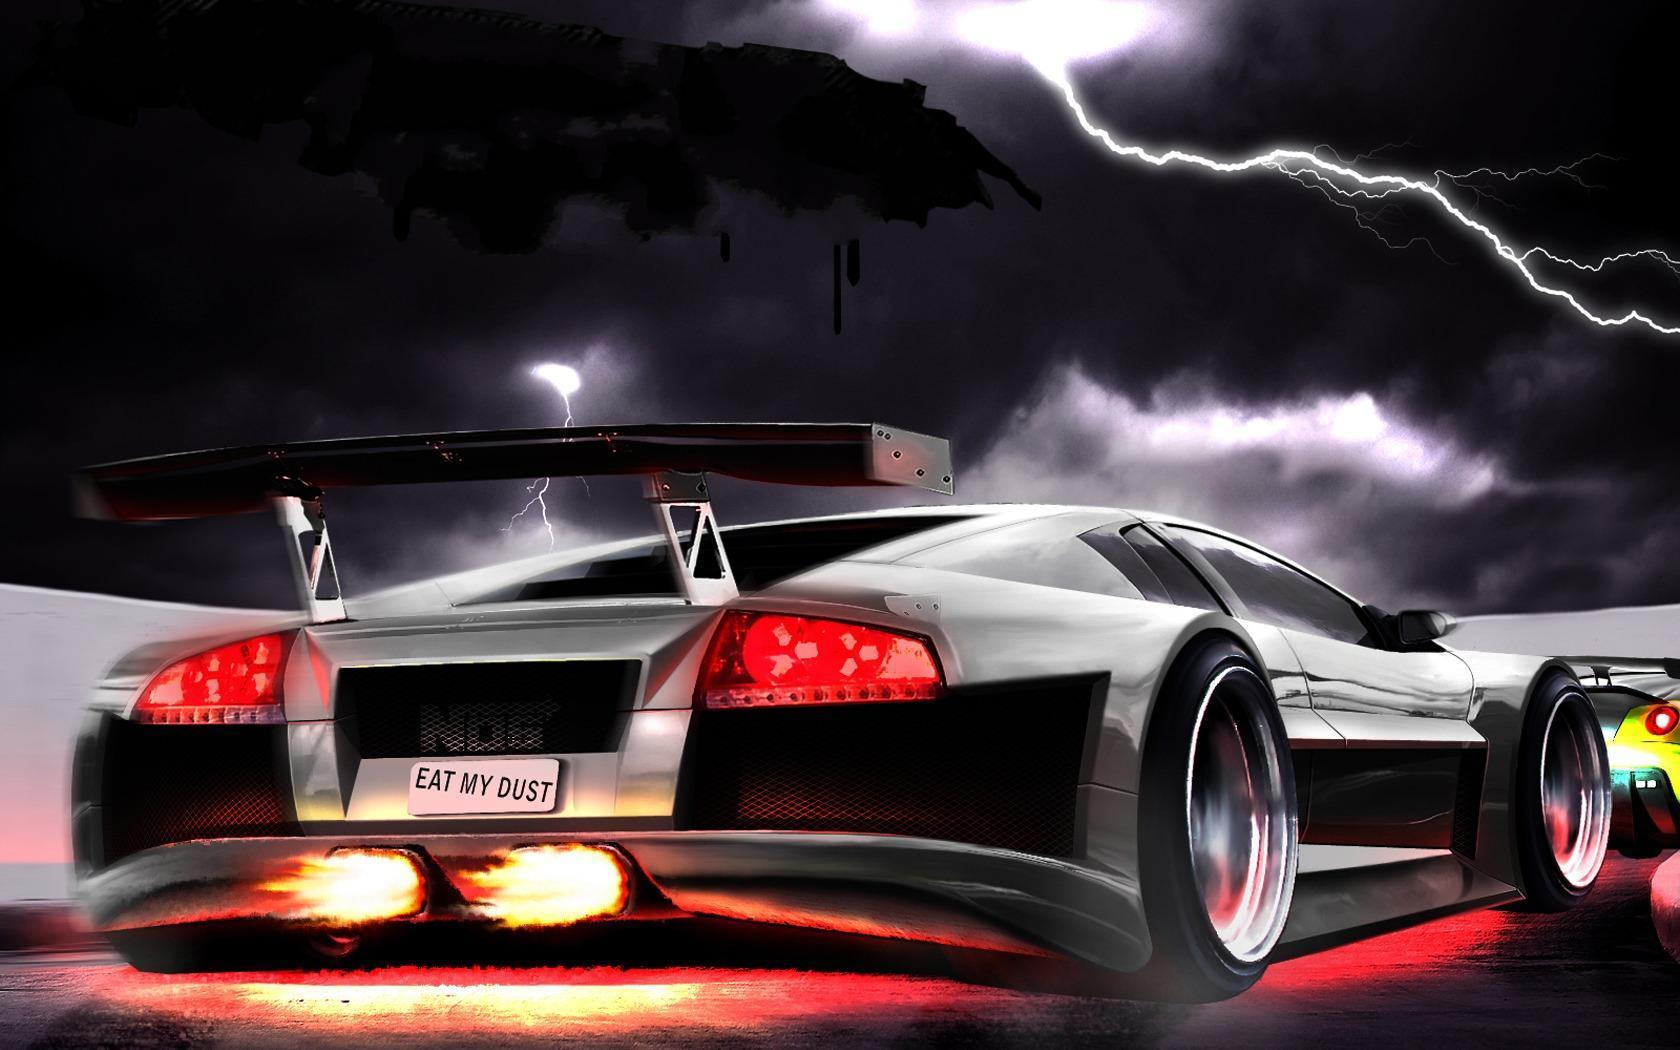 Wallpapers For > Pc Wallpaper Cars